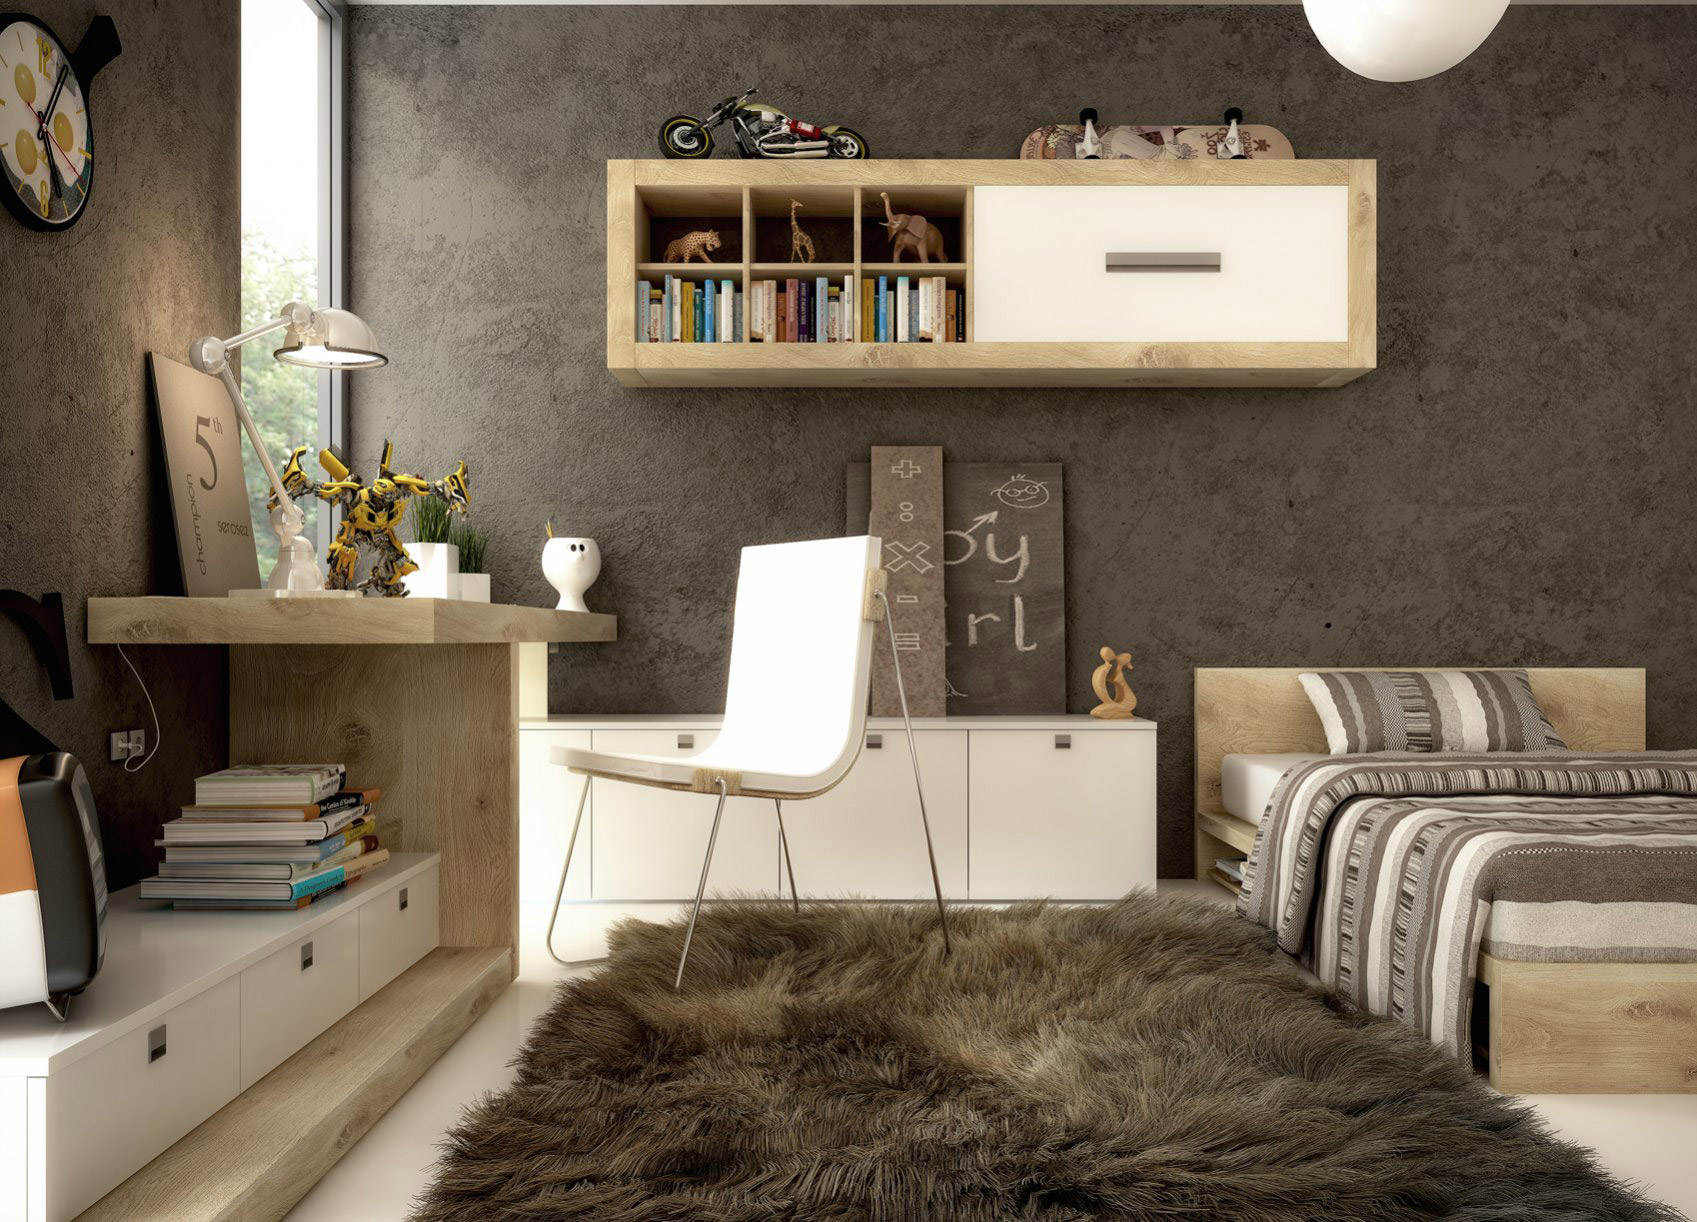 workspace picturesque ikea home office decor inspiration. Office Study Designs. Designs S Workspace Picturesque Ikea Home Decor Inspiration